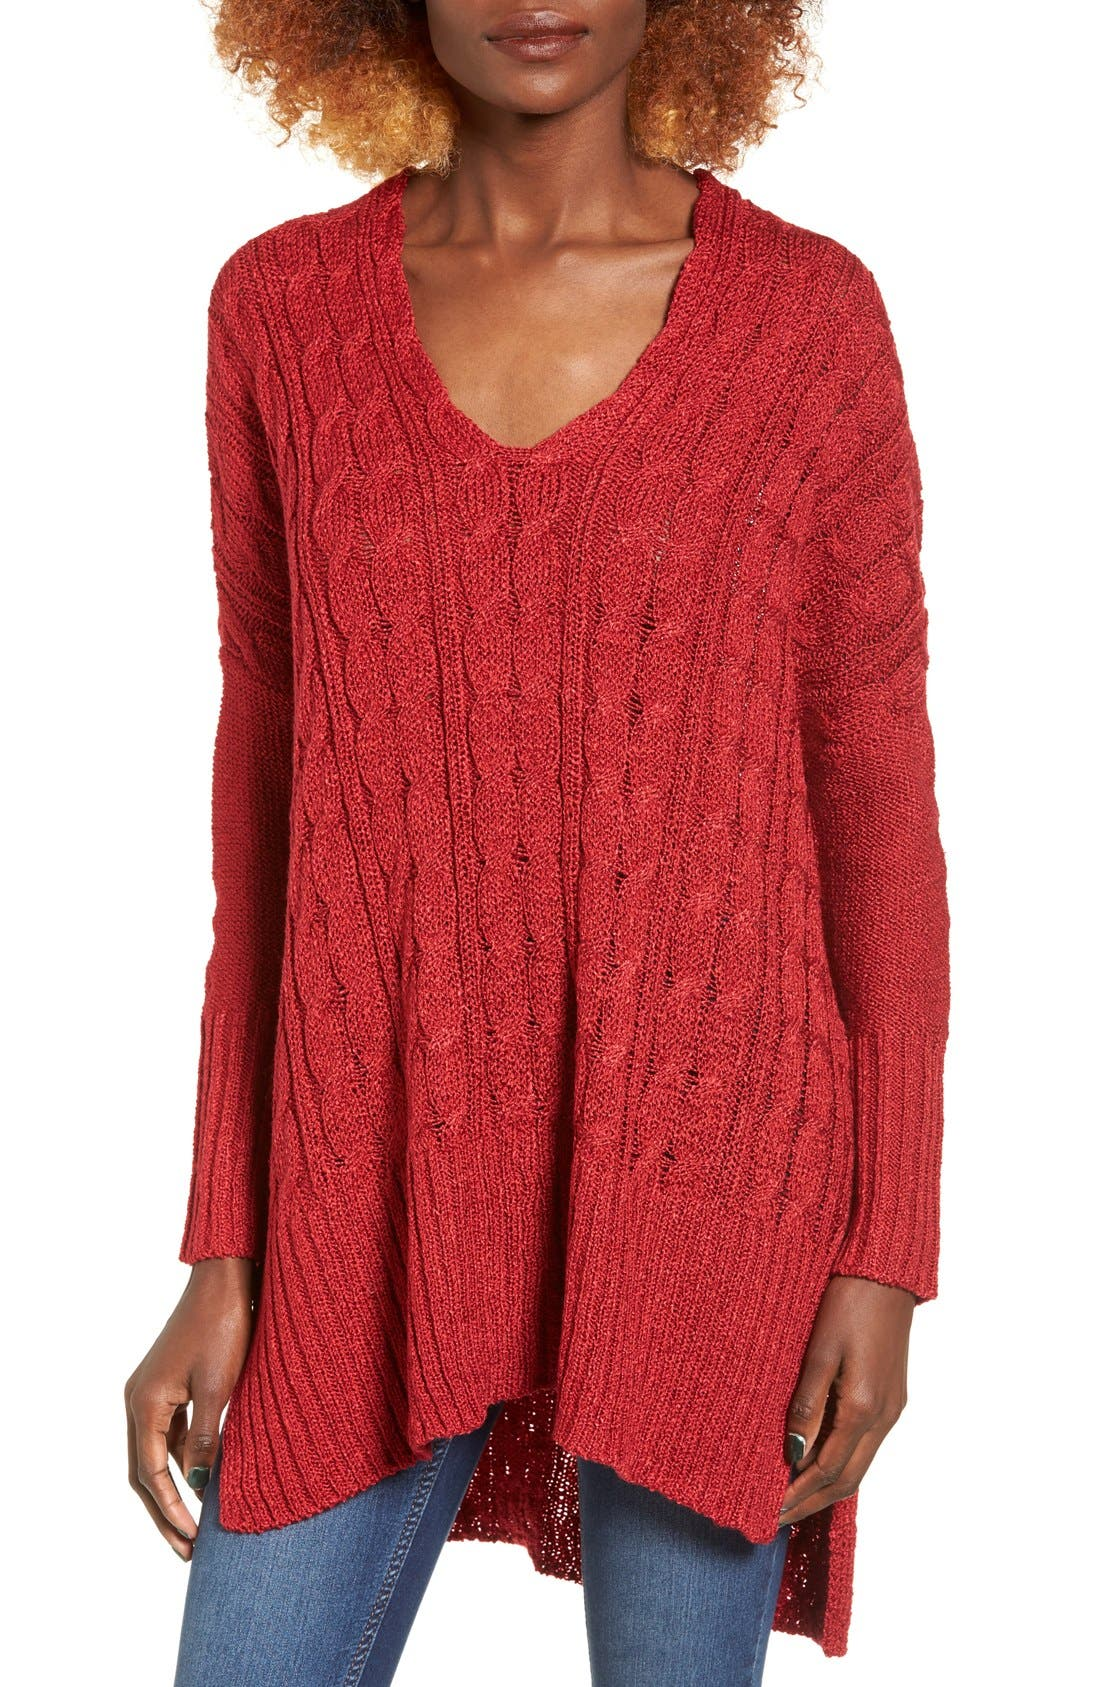 Main Image - Love by Design Cable Knit Pullover